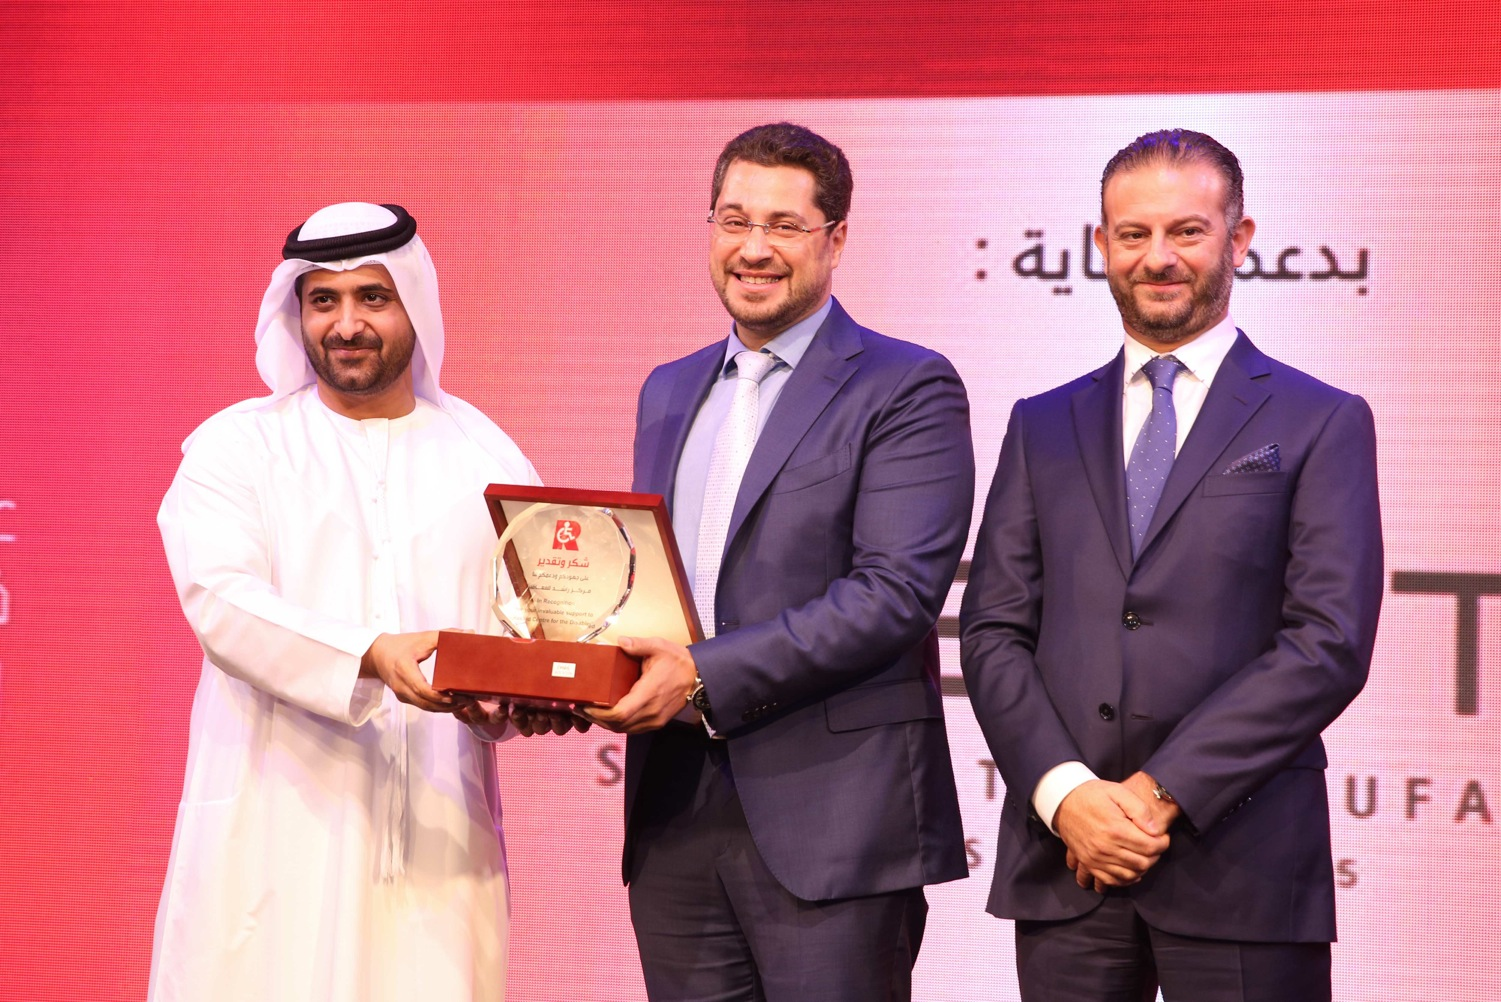 Philanthropy is good for the soul – Rashid Centre awards QNET